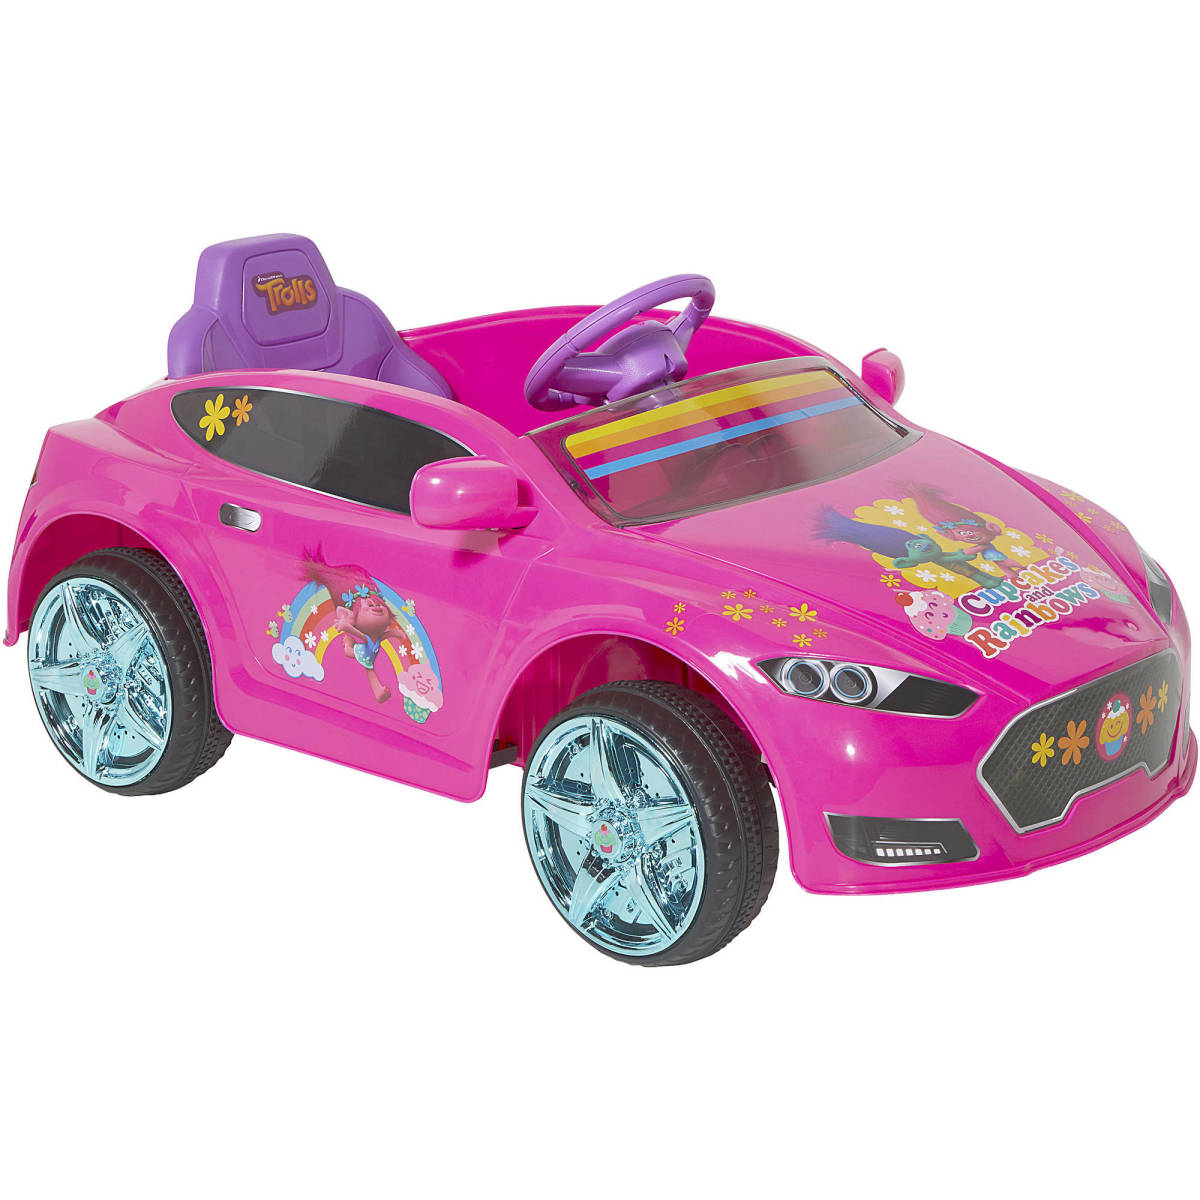 electric cars for kids trolls 6v speed ride on children girls drive game - Cars For Girls To Drive Kids